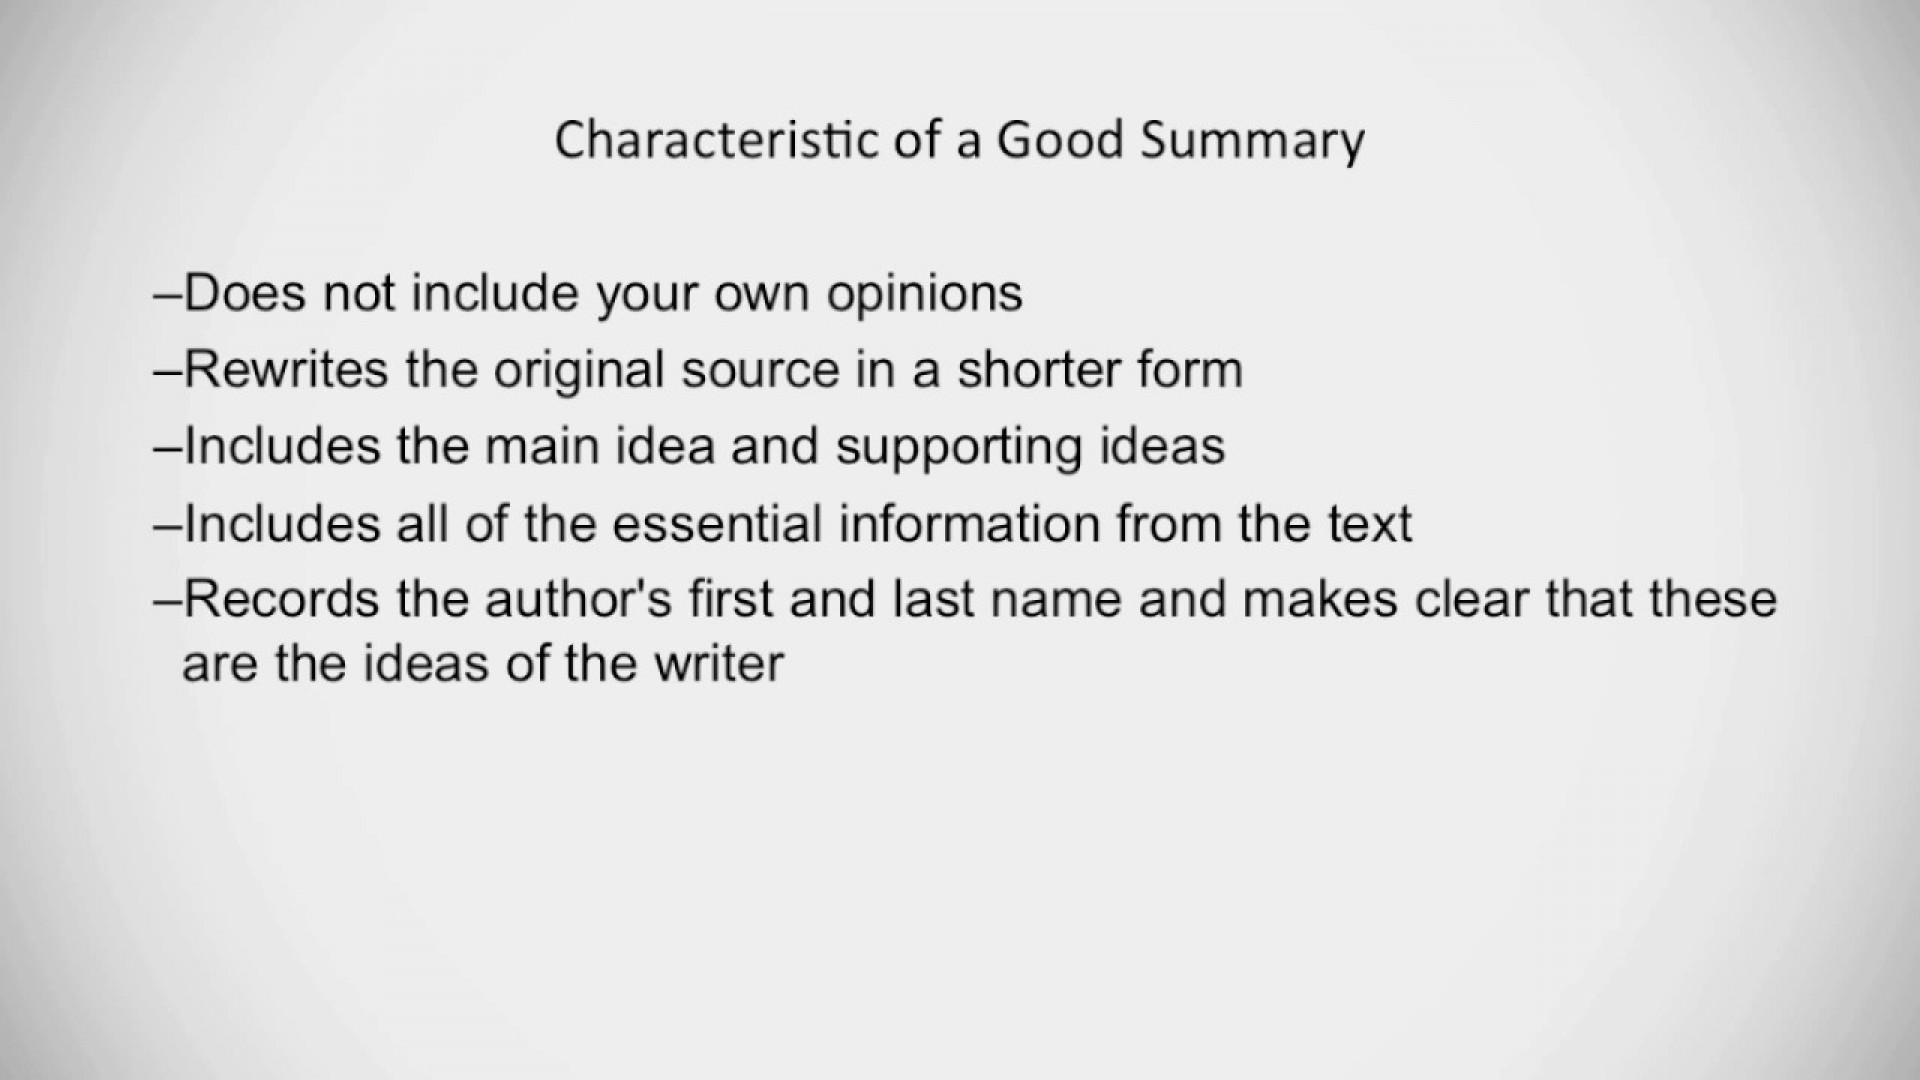 002 Essay Example Maxresdefault Summary And Stupendous Response Thesis Conclusion Analysis Sample 1920